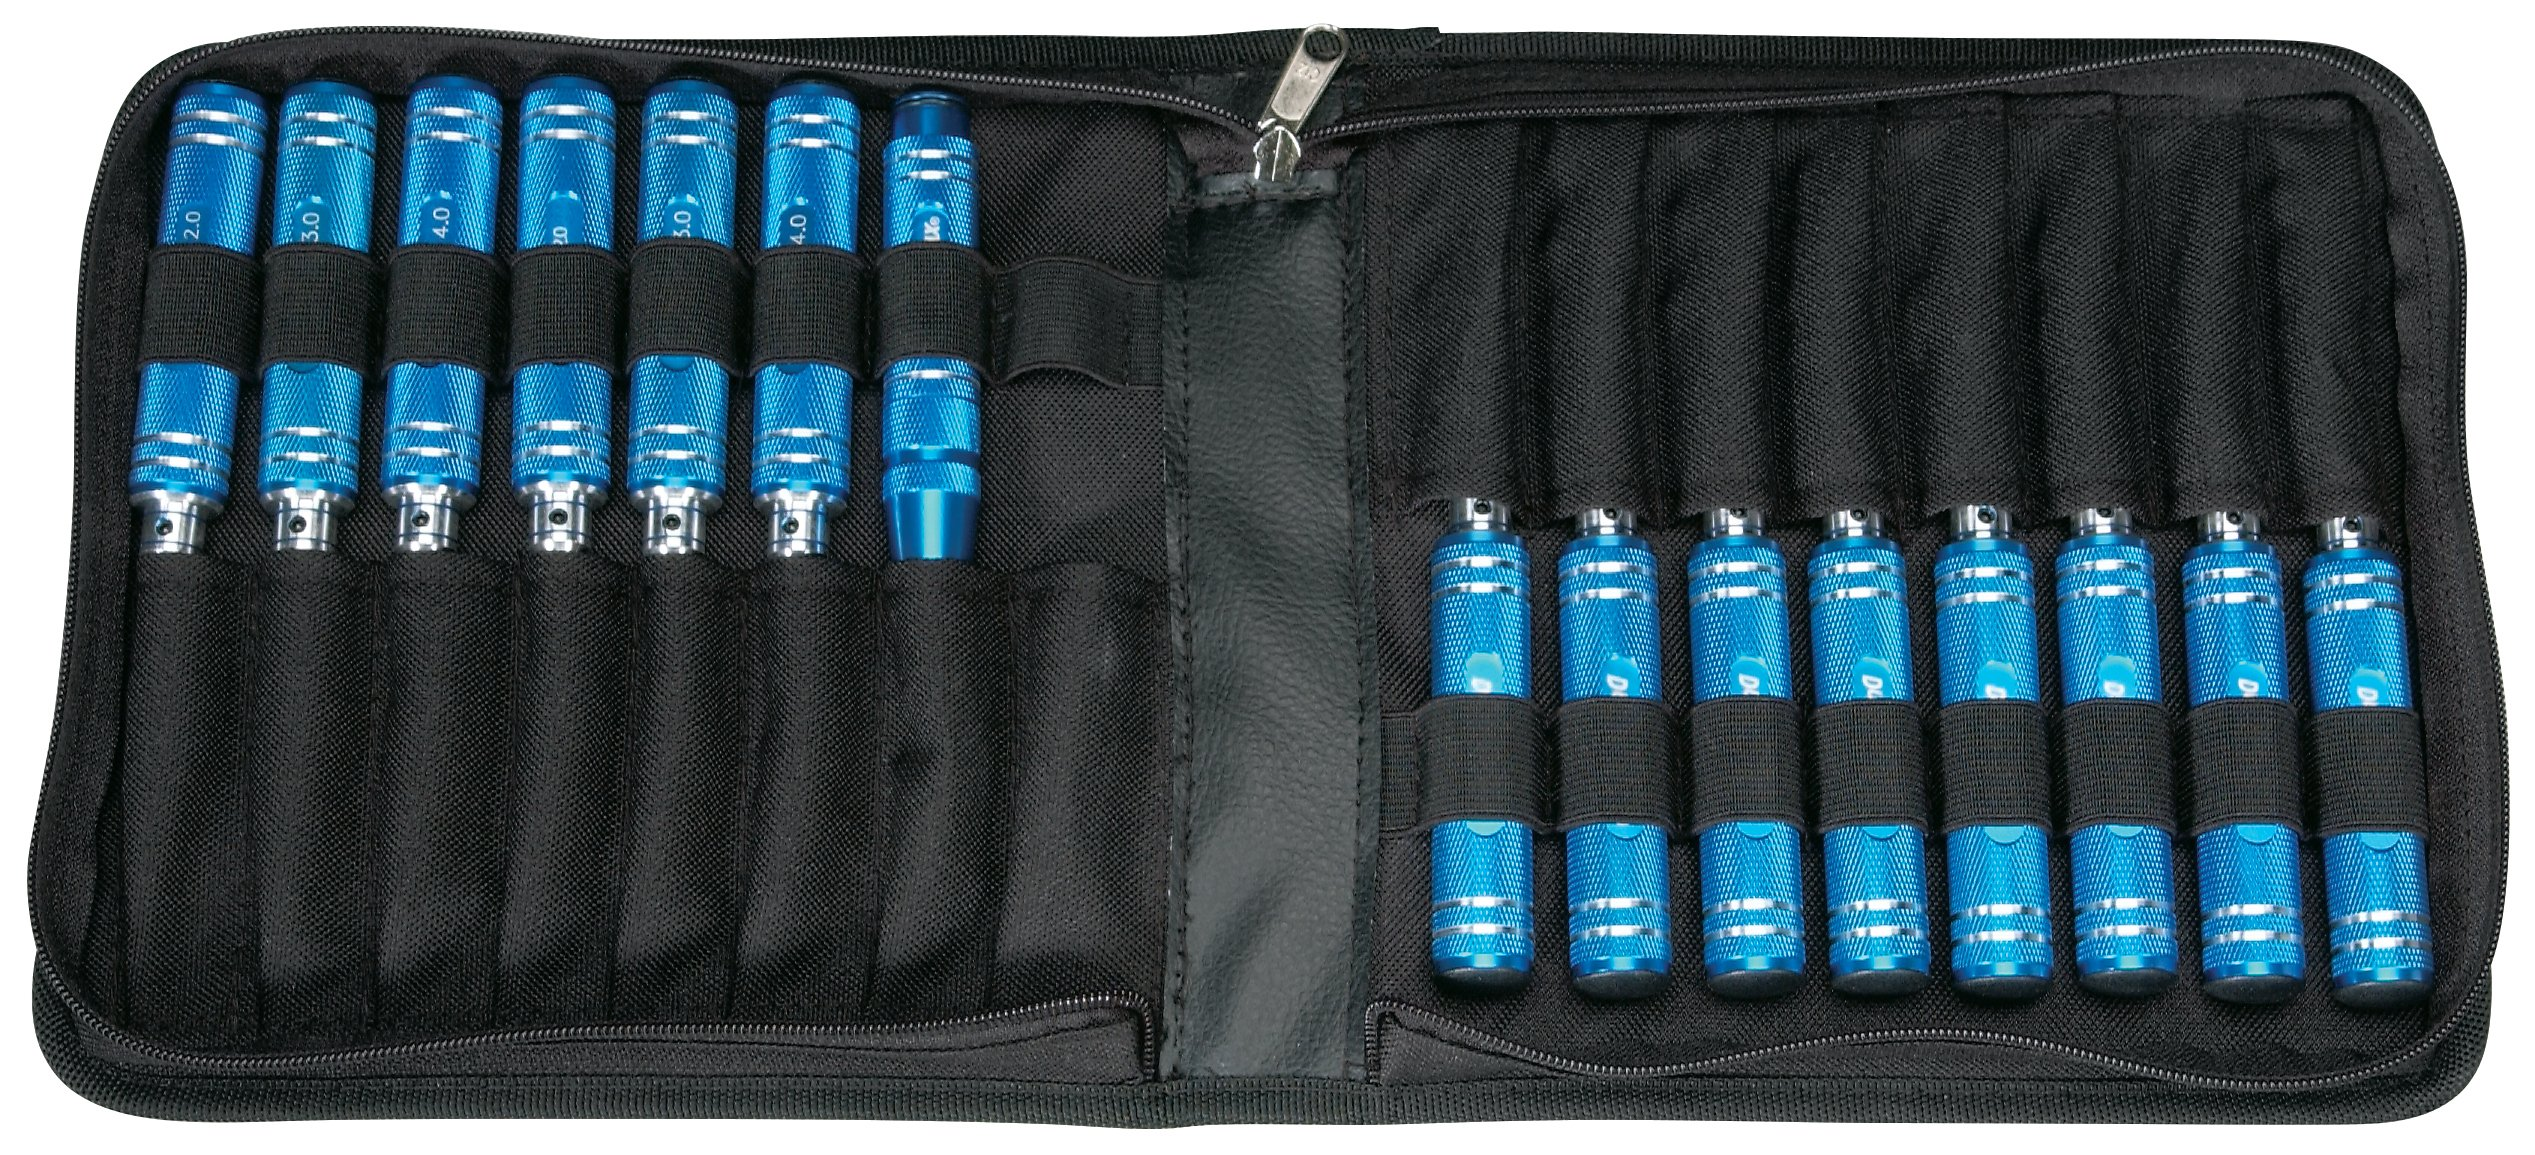 Duratrax Ultimate Tool Set with Slotted Screwdrivers, Phillips Screwdrivers, Metric and SAE Hex Drivers, Body Reamer, and Nylon Pouch